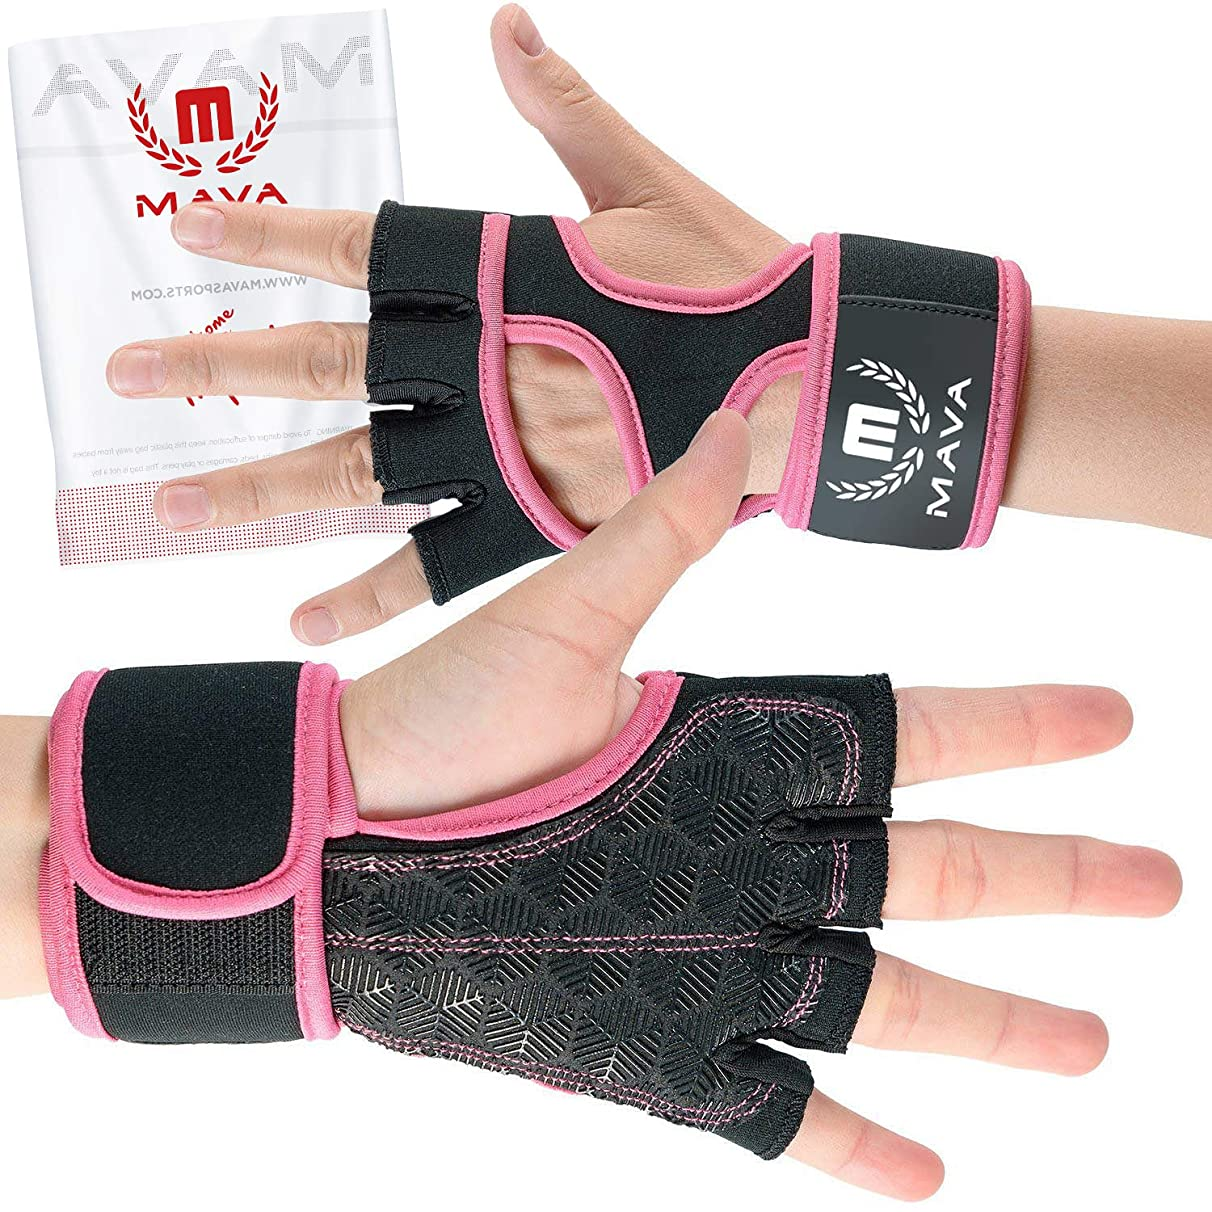 Cross Training Gloves with Wrist Support for Gym Workouts, WOD, Weightlifting & Fitness– Silicone Padded Workout Hand Grips Against Calluses with Integrated Wrist Wraps by Mava